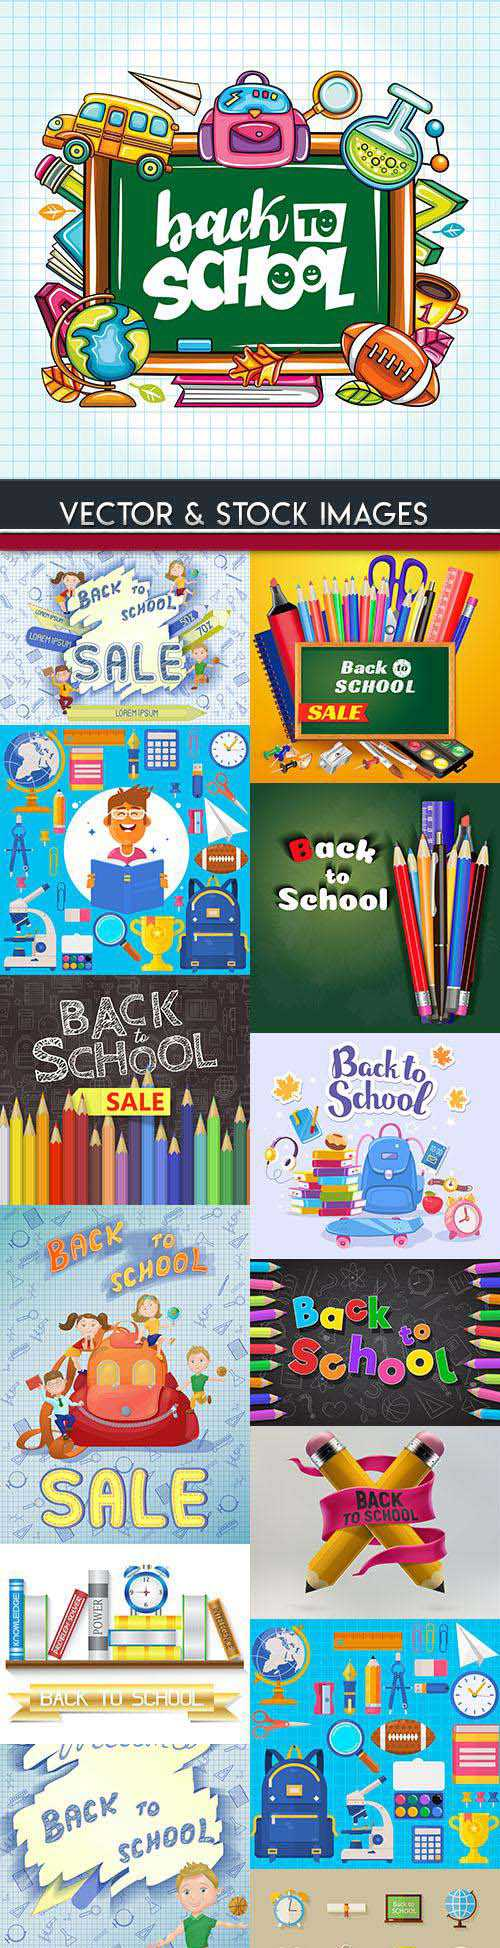 Back to school and accessories collection illustration 26